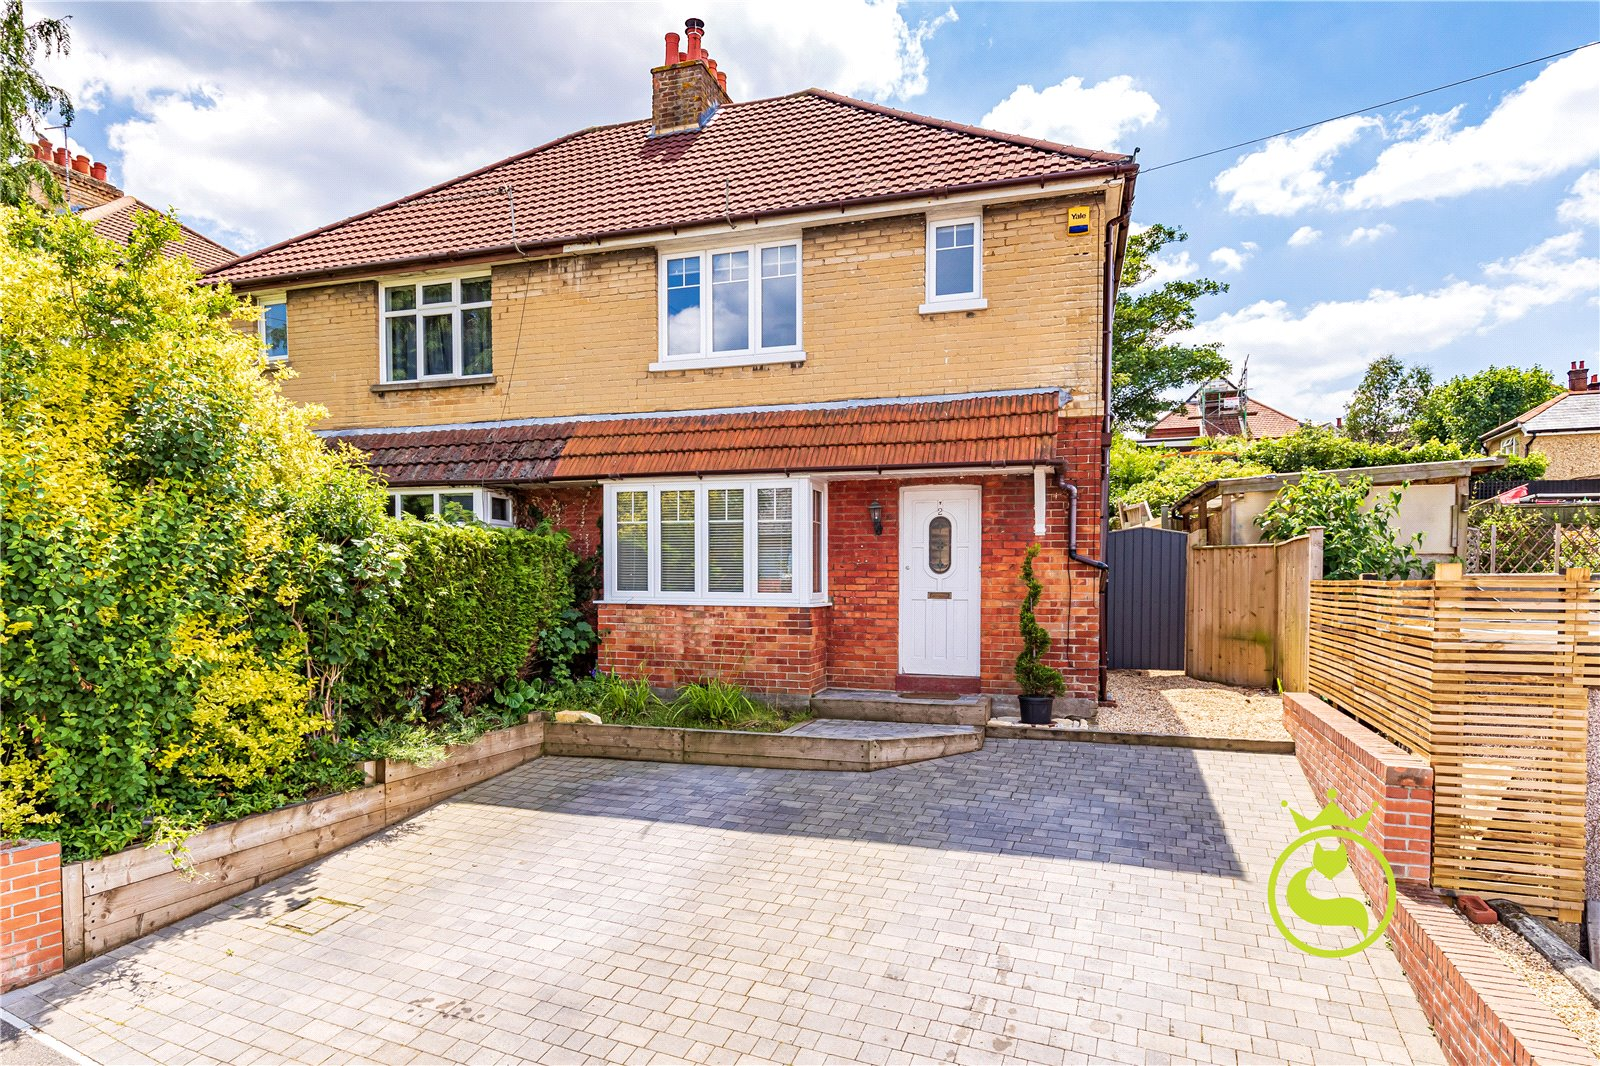 3 bed house for sale in Gwynne Road, Parkstone  - Property Image 1